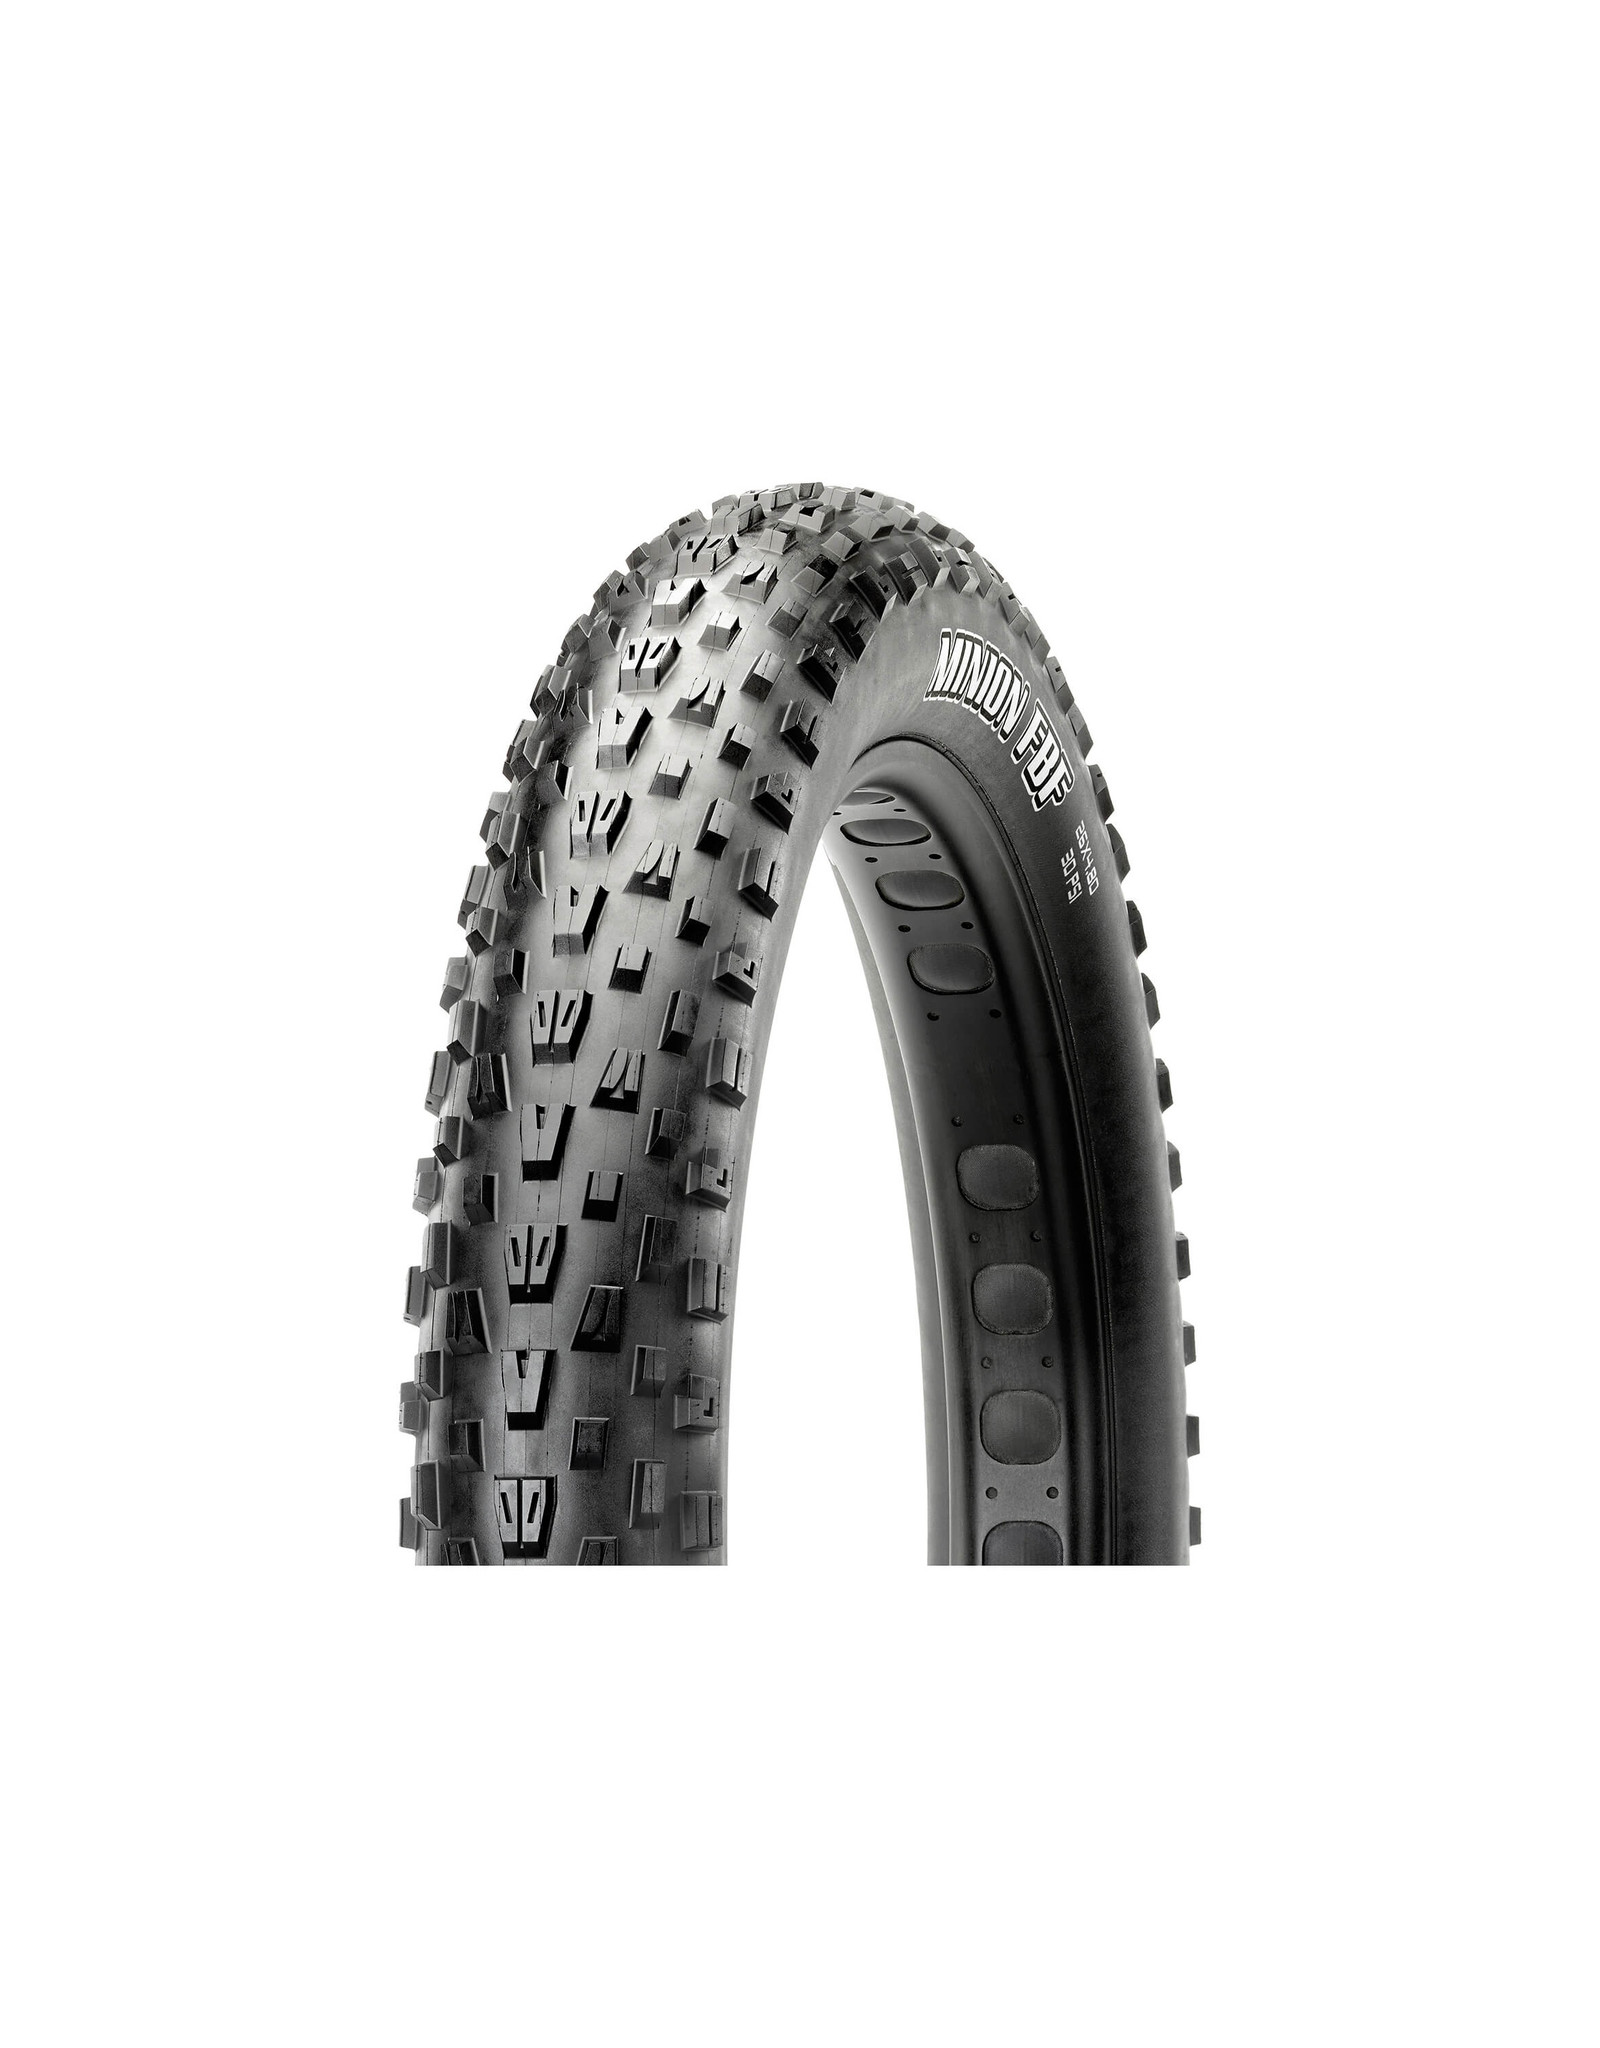 MAXXIS TIRE FAT BIKE MINION FB F 27.5X3.80 F120 DC EXO TR